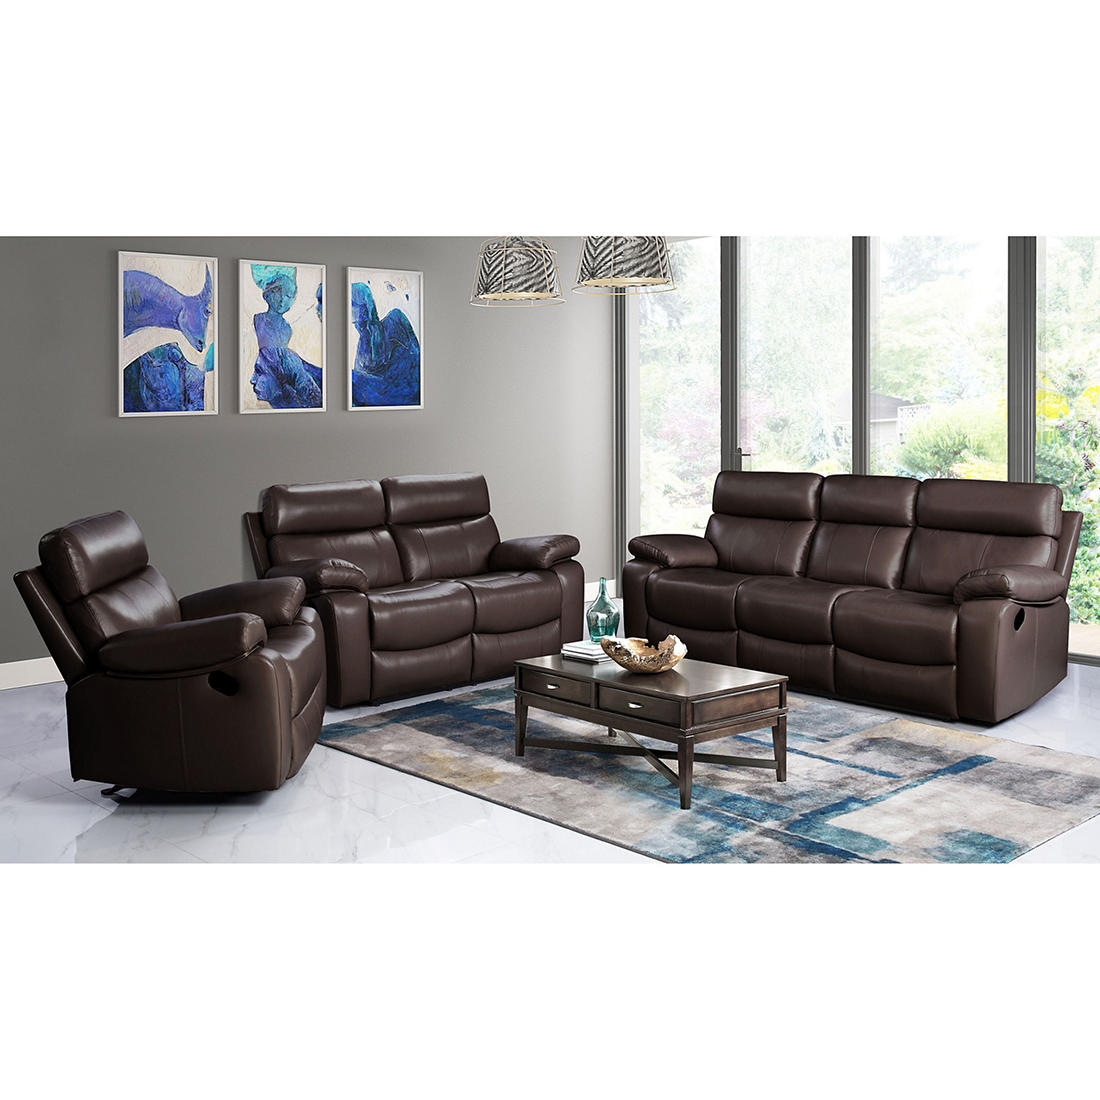 Top Grain Leather Reclining Living